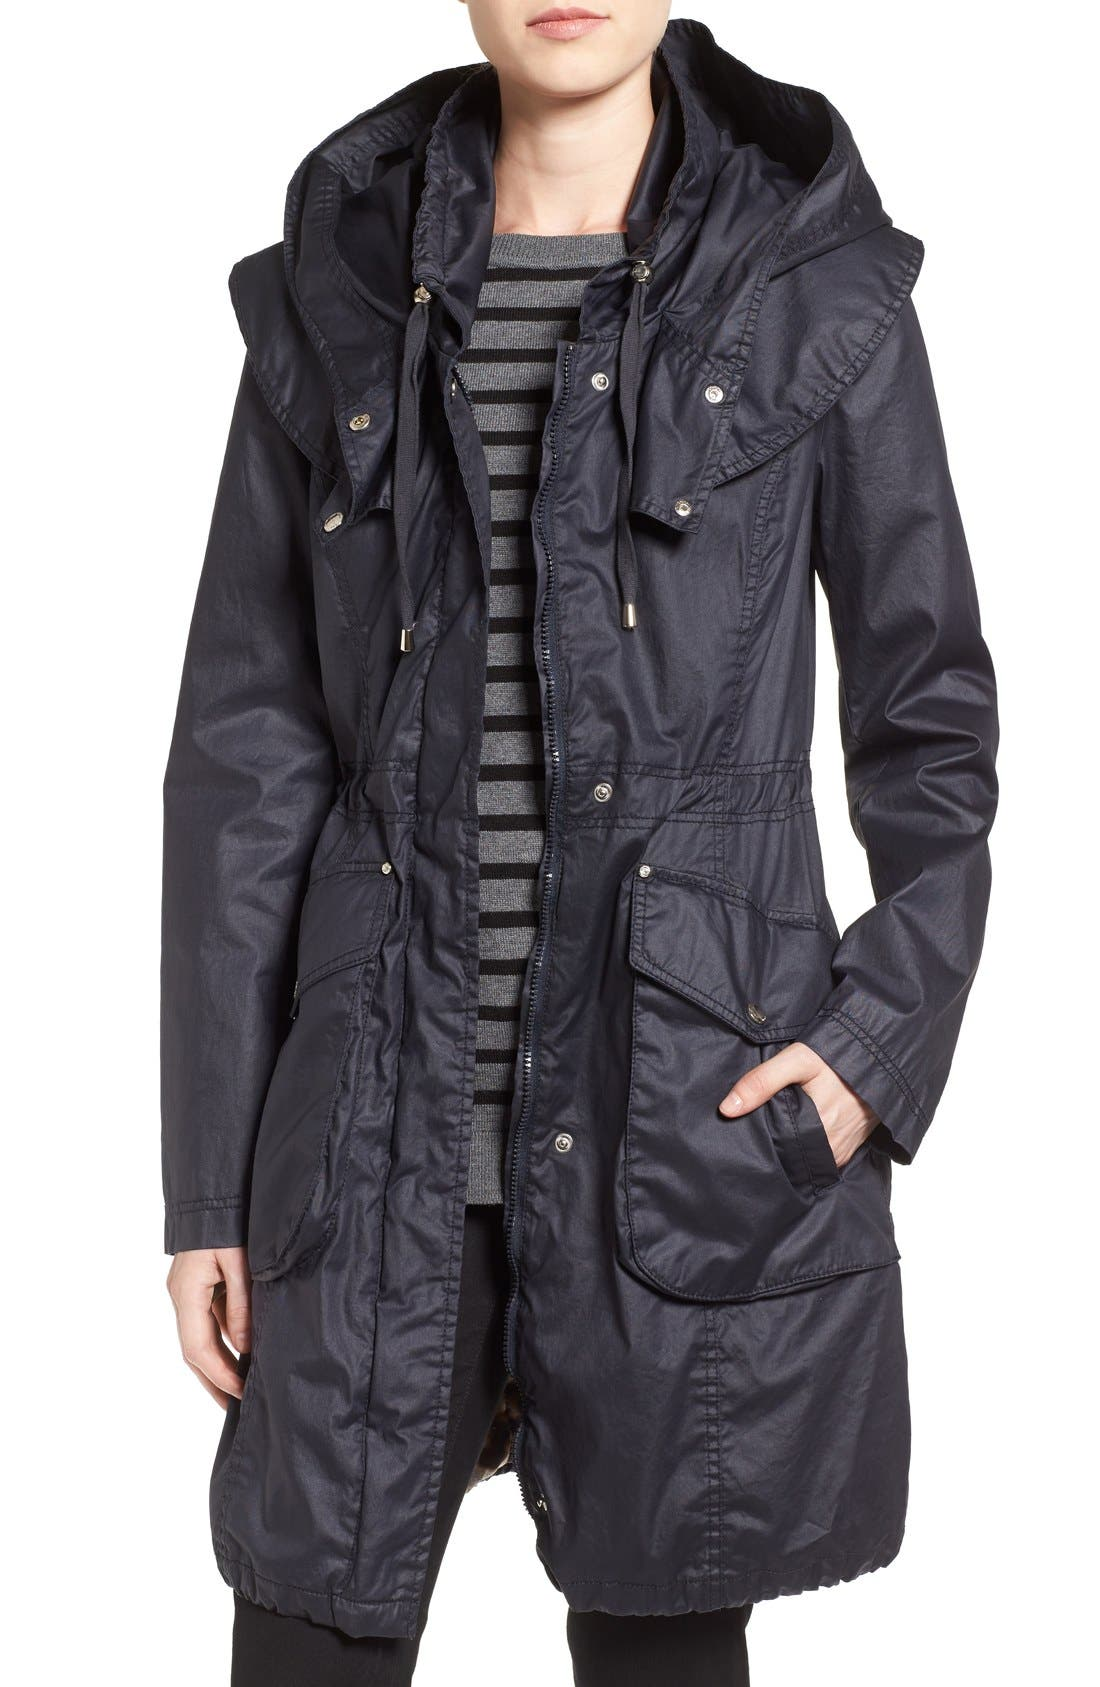 Alternate Image 1 Selected - Laundry by Shelli Segal Double Collar Hooded Waxed Cotton Anorak (Regular & Petite)